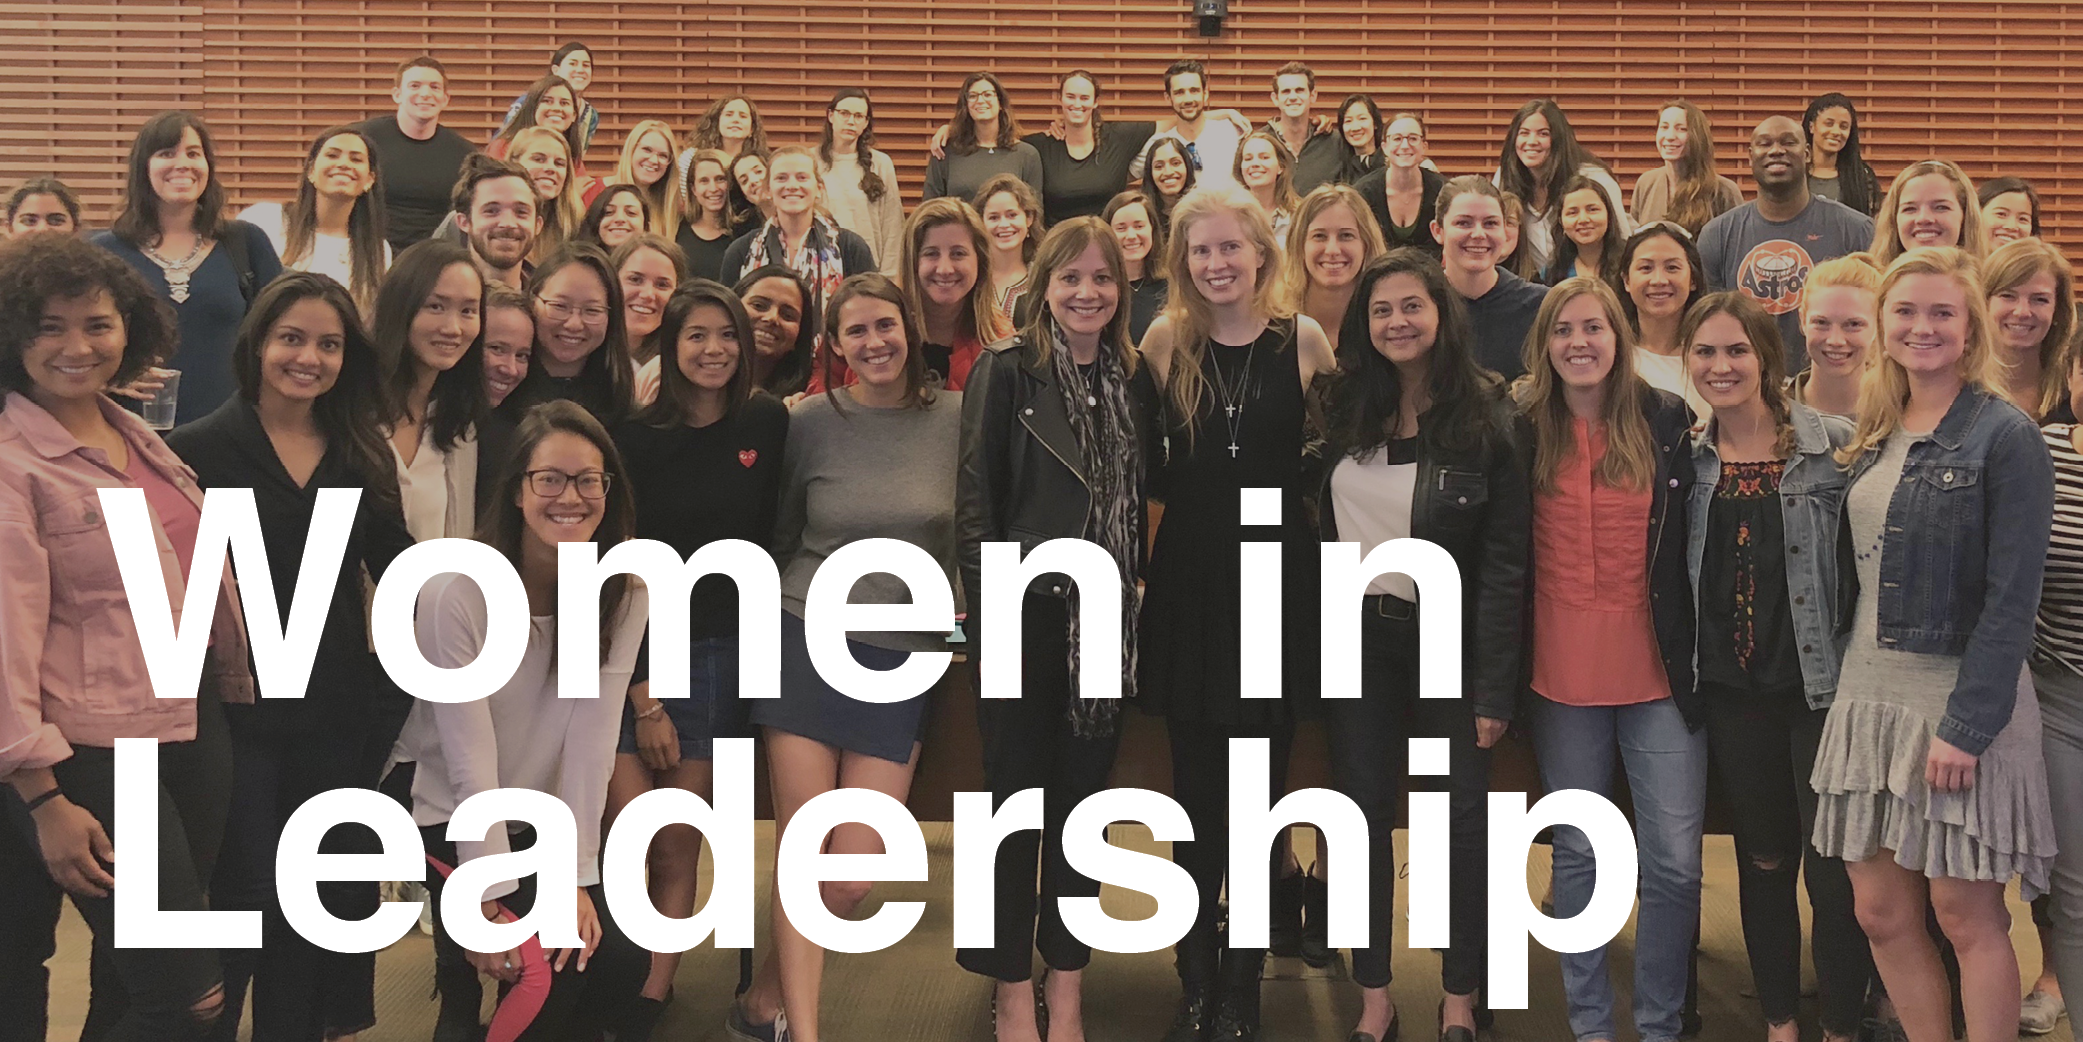 Access materials to be empowered as a woman in leadership